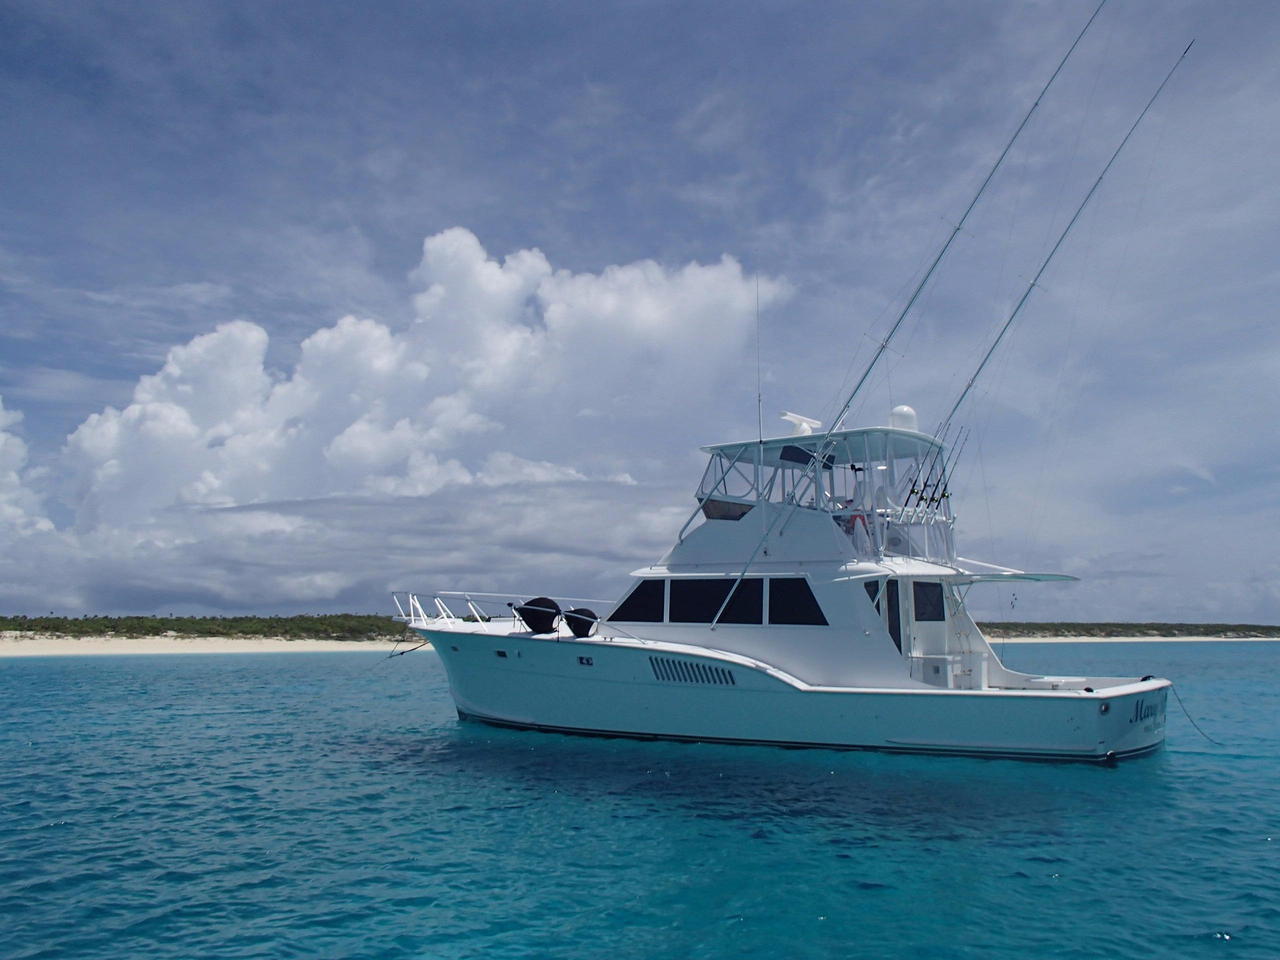 1979 used hatteras sportfish sports fishing boat for sale ForHatteras Fishing Boat